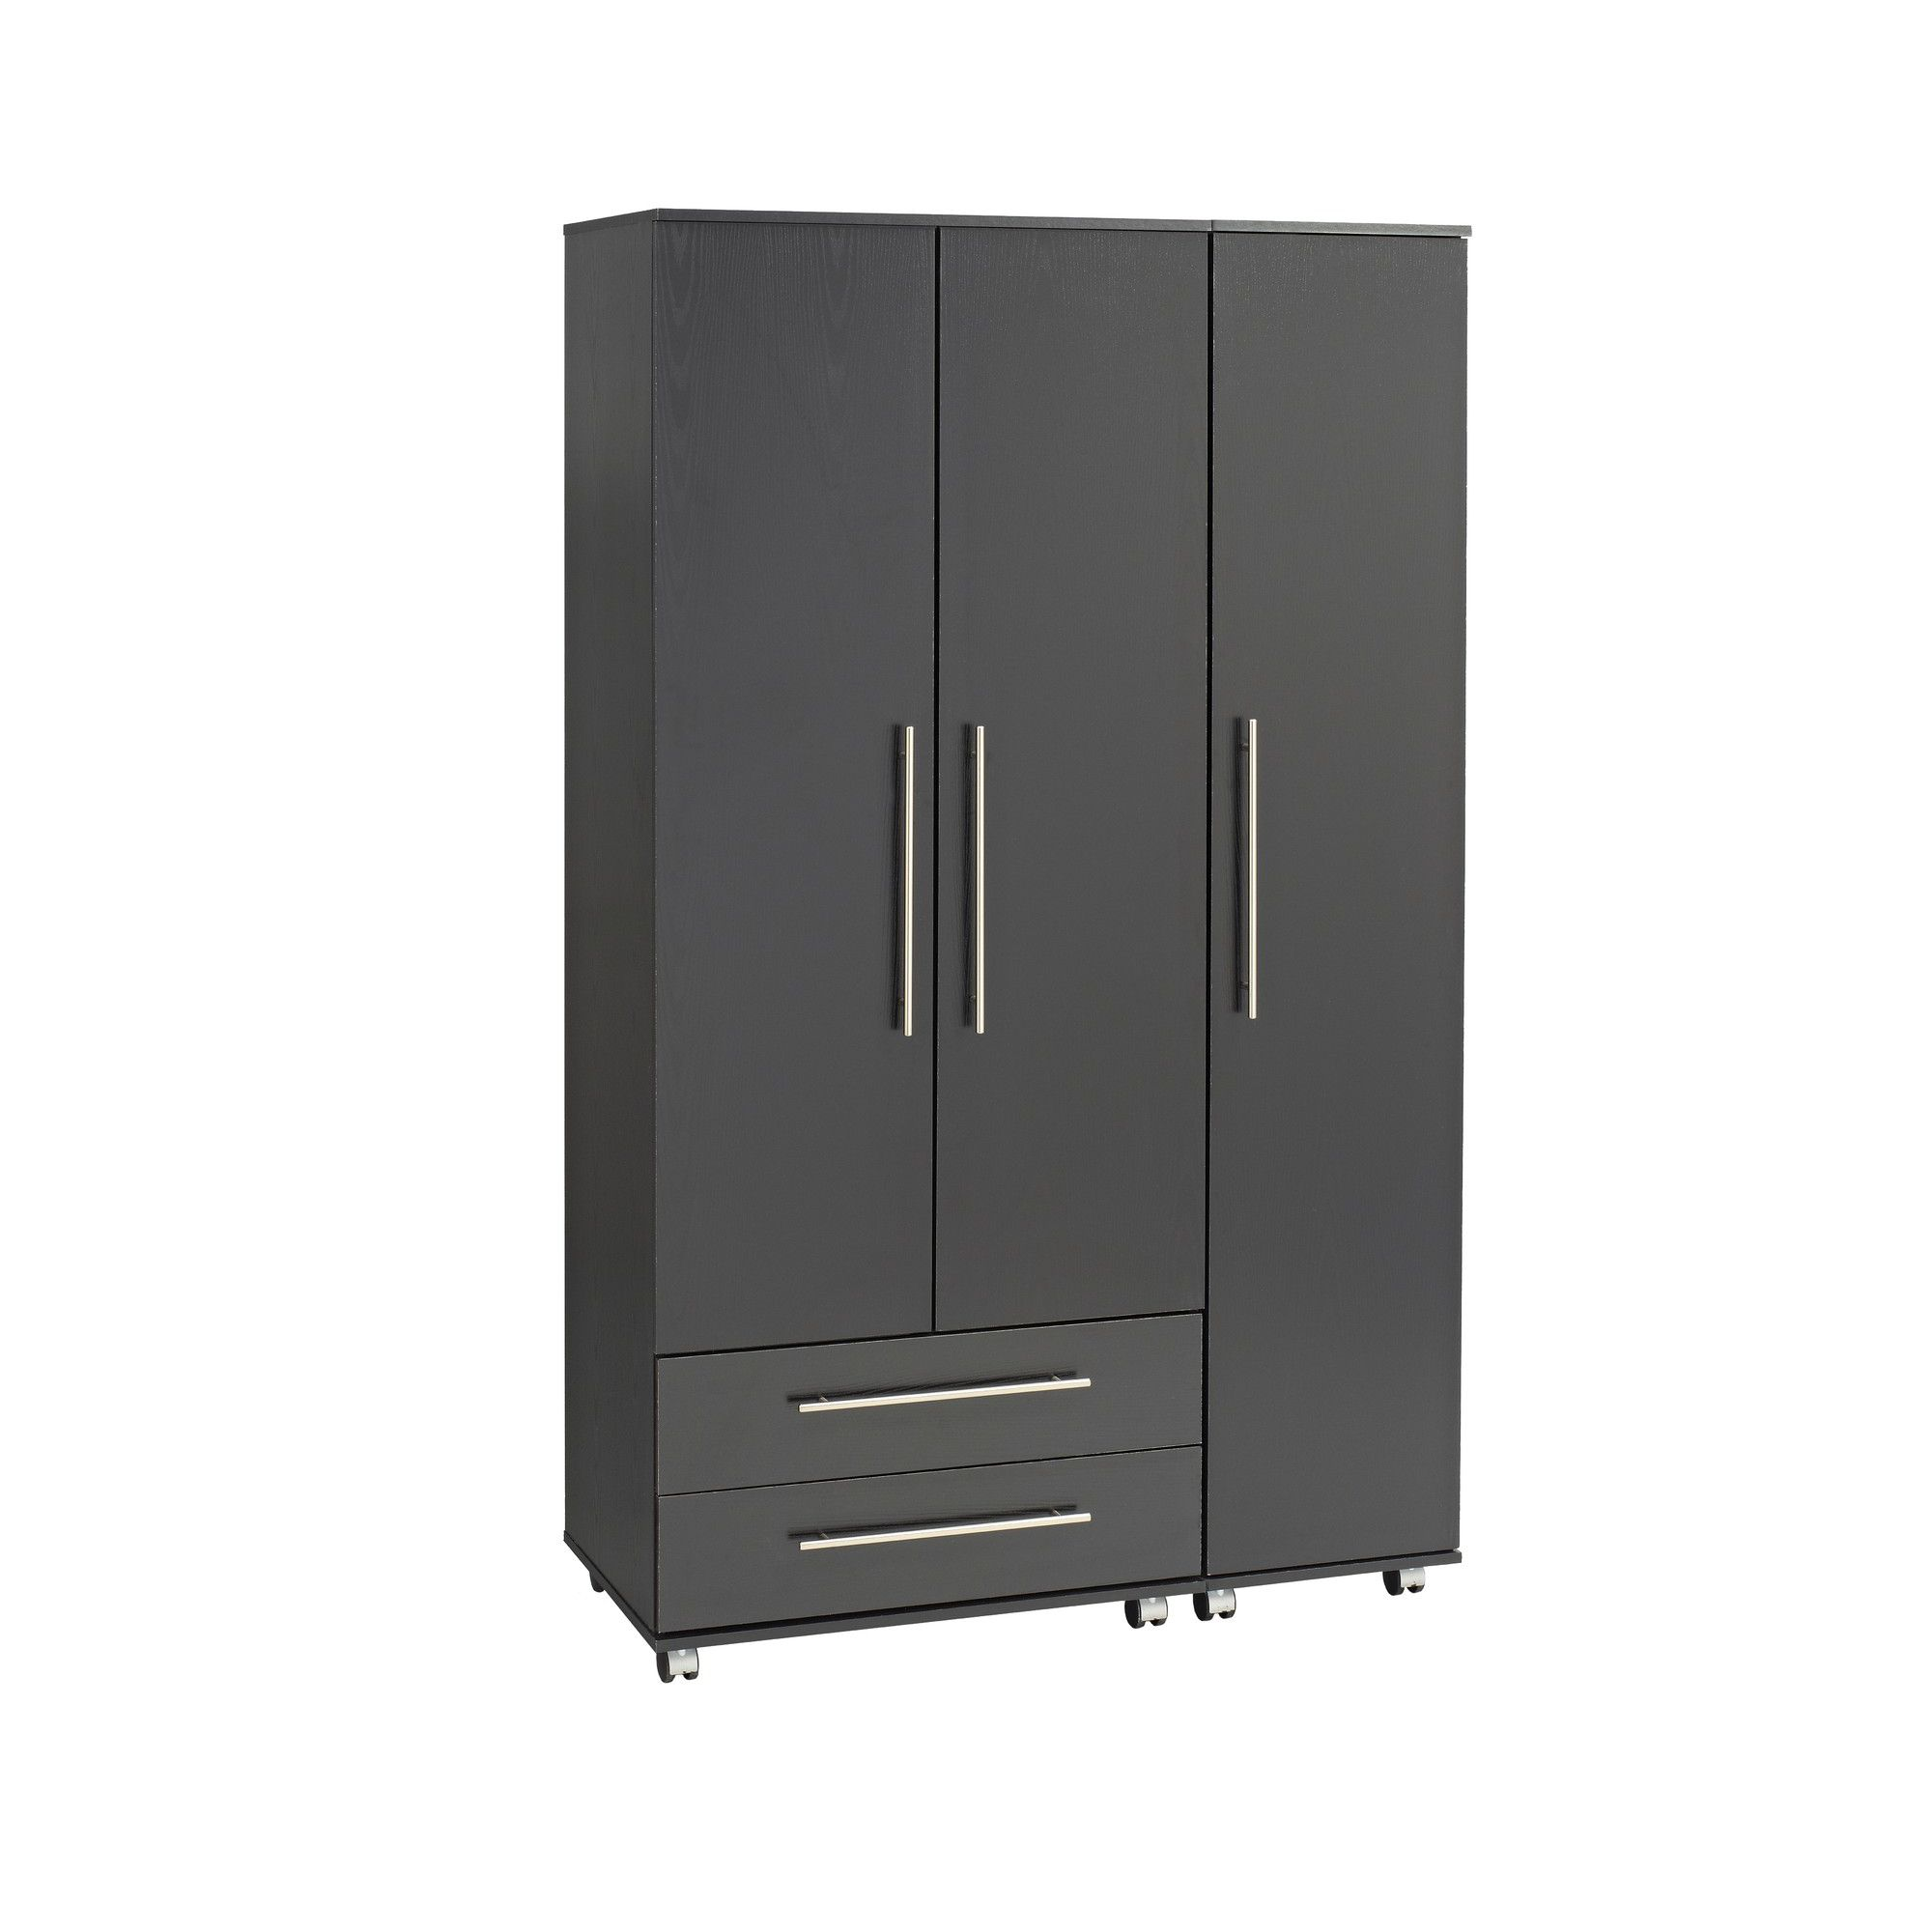 Ideal Furniture Bobby 3 Door Wardrobe - Oak at Tesco Direct